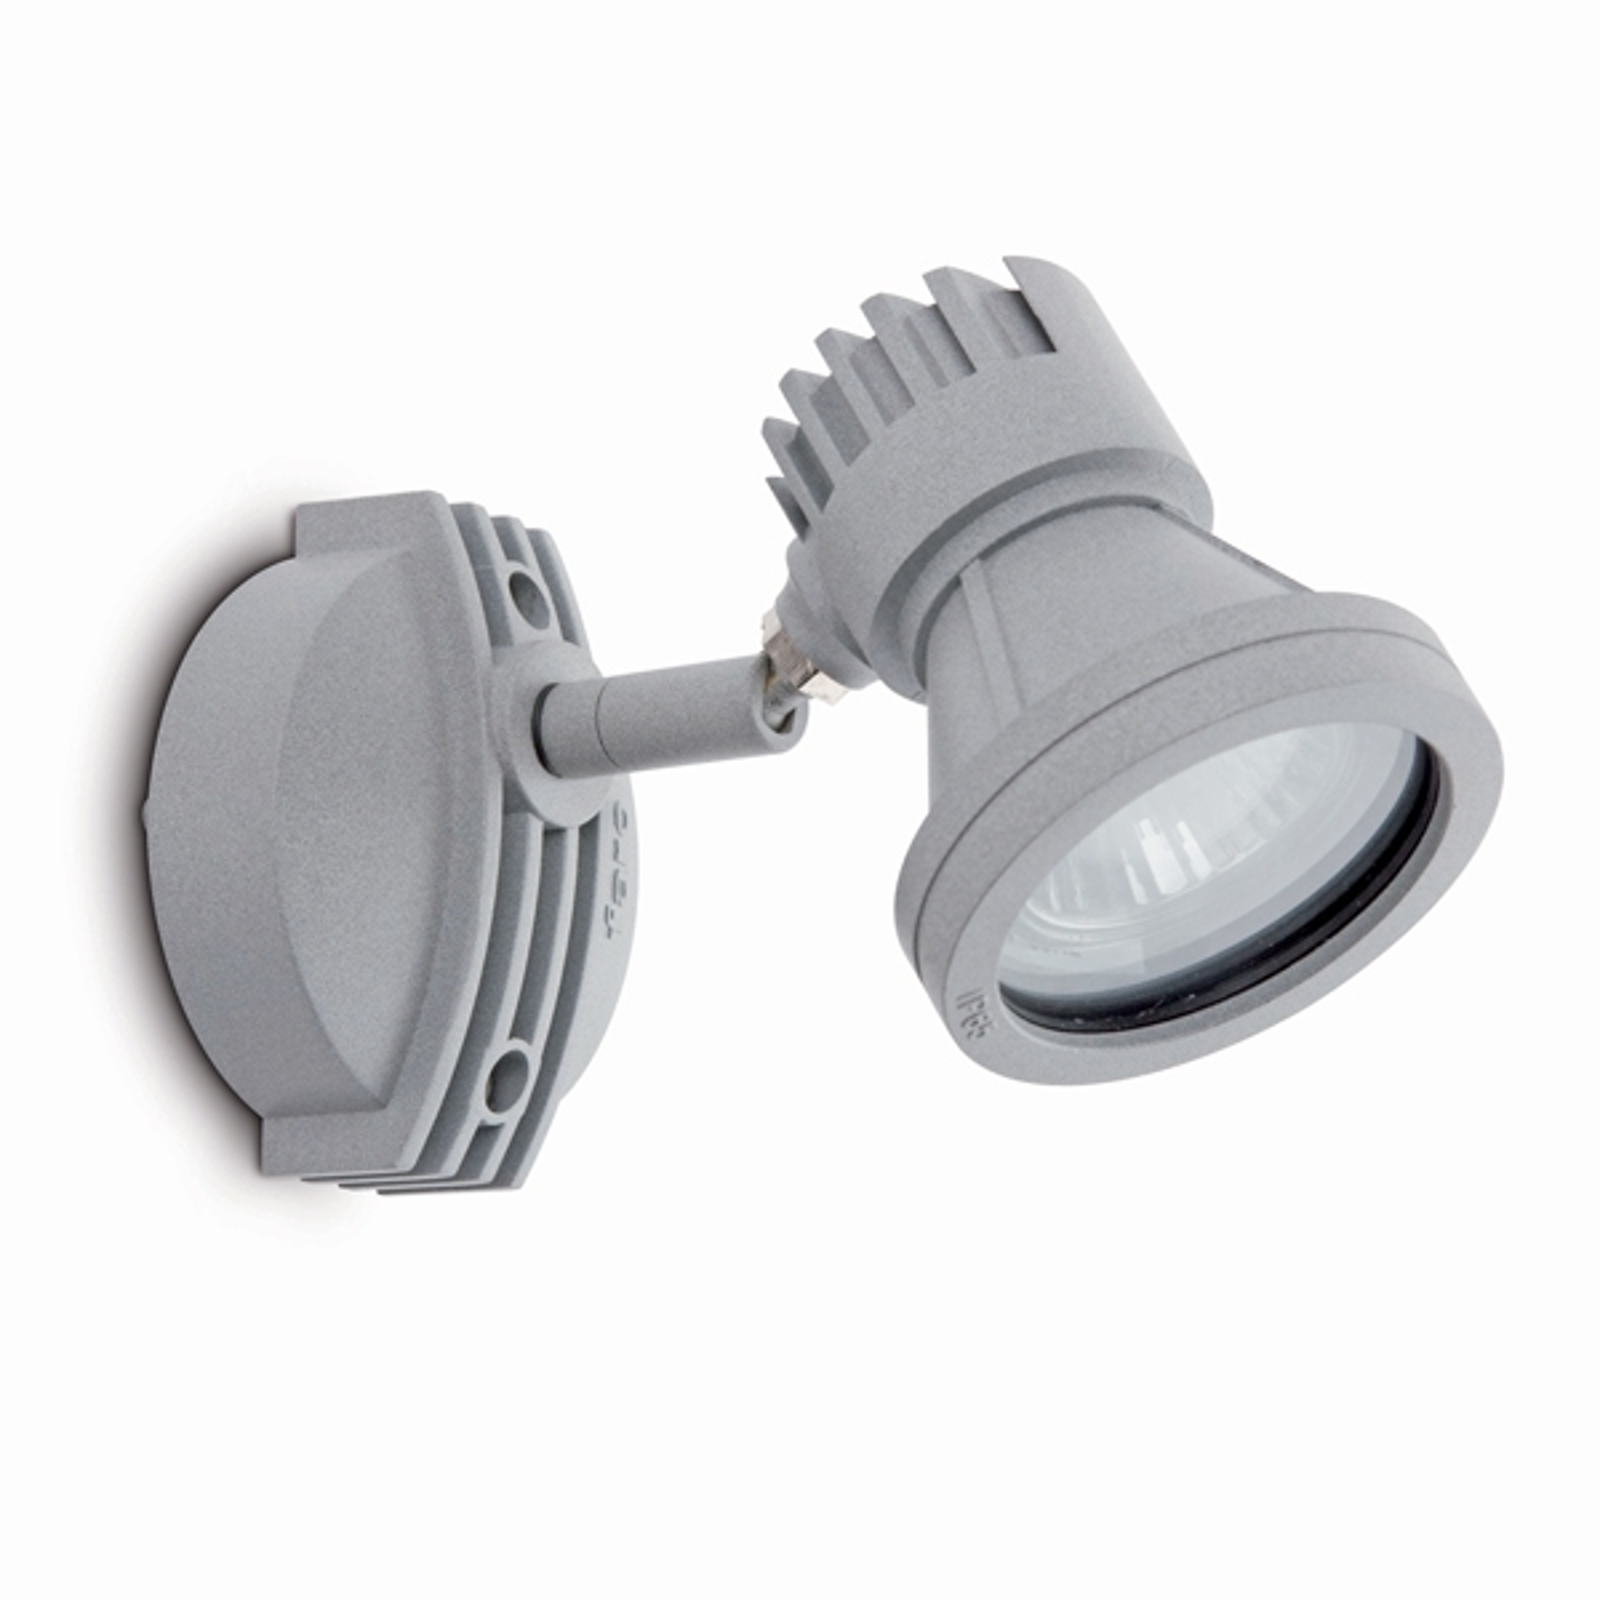 Mini-Project Practical Exterior Wall Lamp_3505123_1